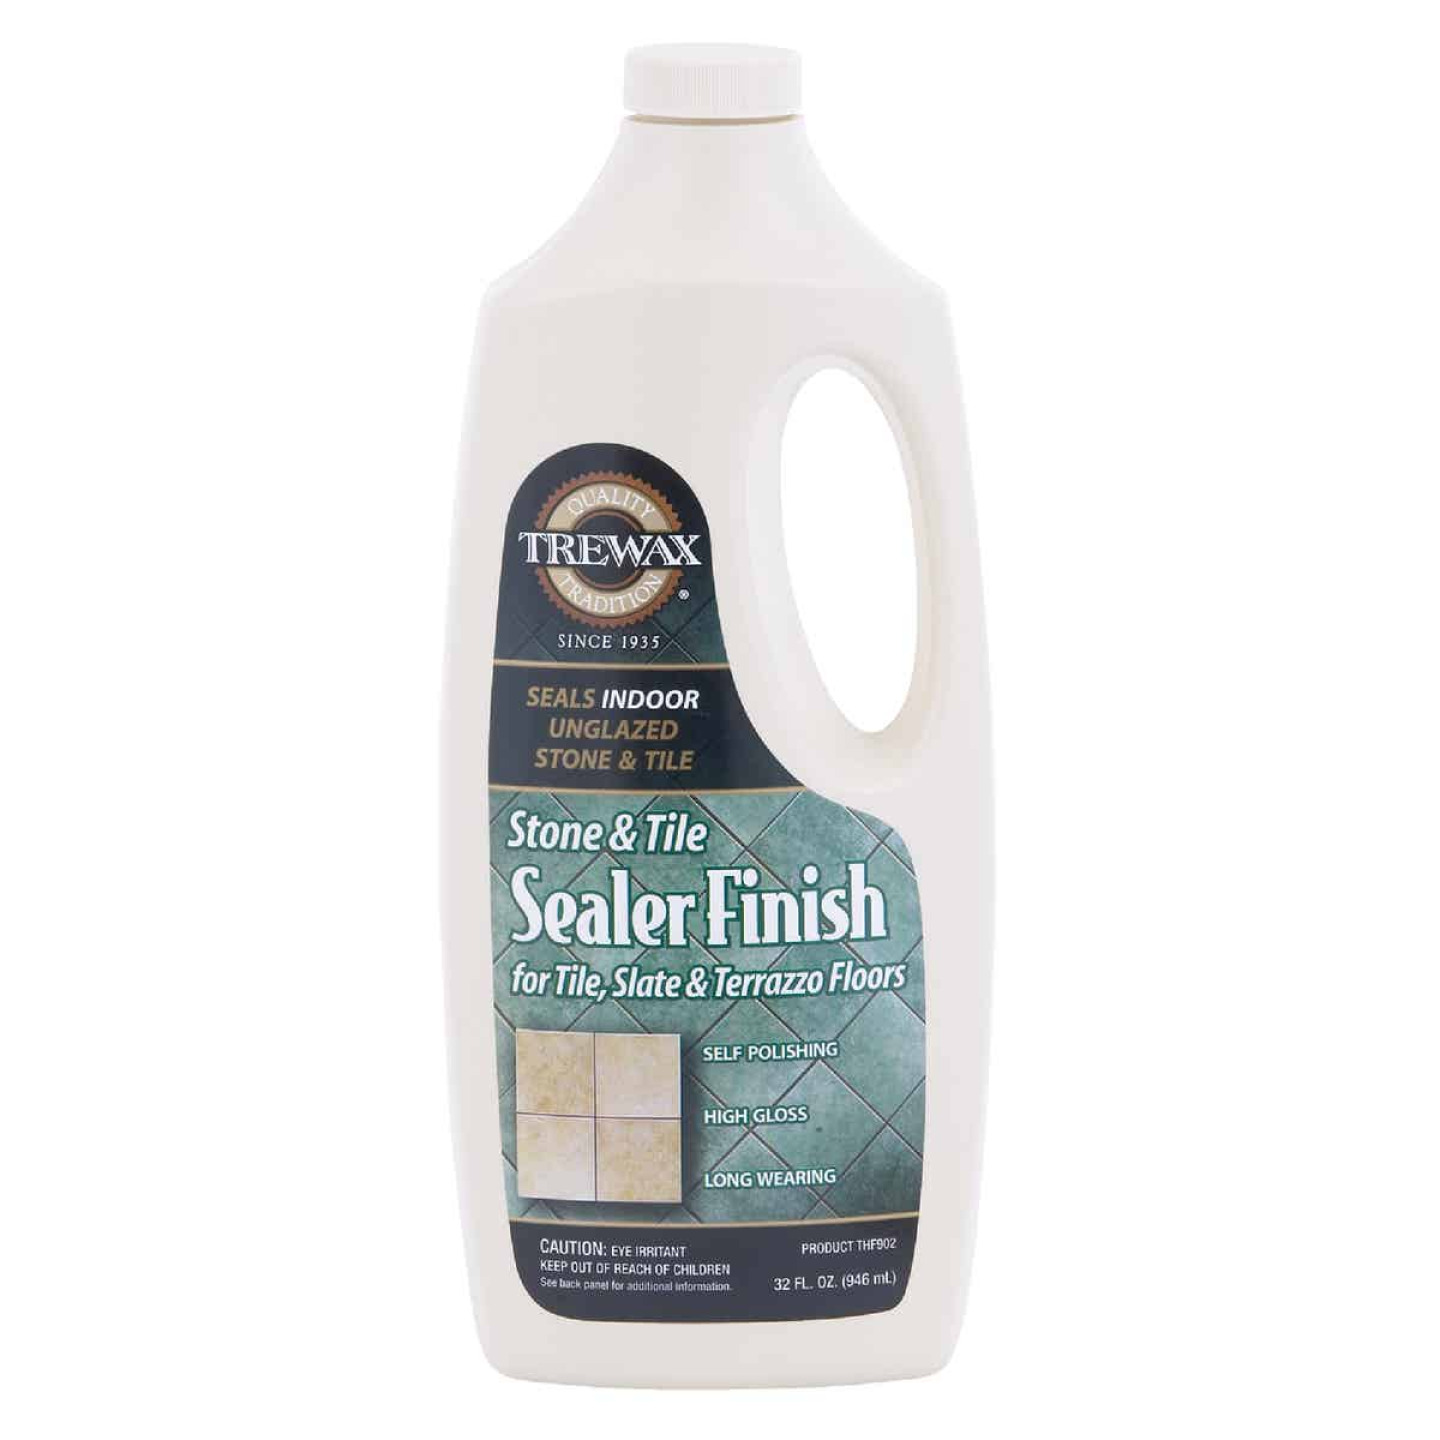 Trewax 32 Oz. Stone & Tile Sealer Finish Image 1